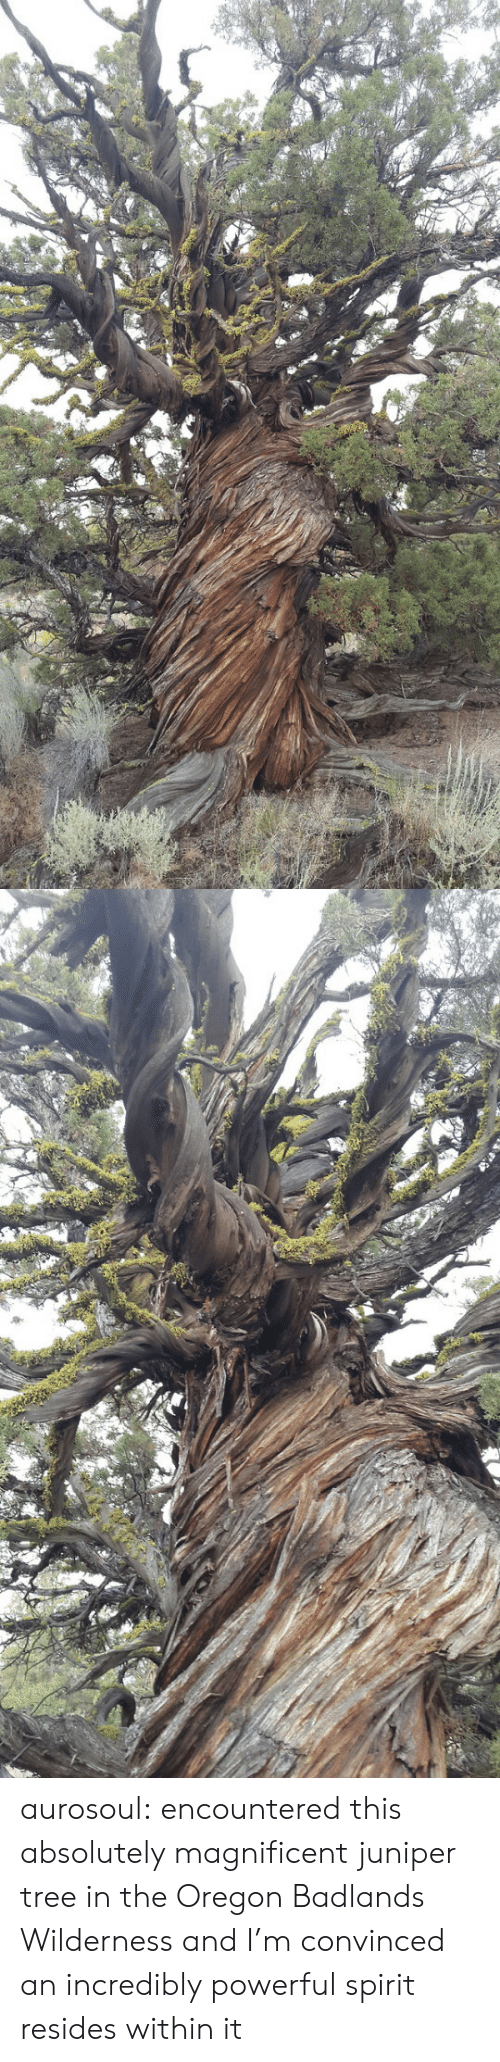 Tumblr, Blog, and Oregon: aurosoul: encountered this absolutely magnificent juniper tree in the Oregon Badlands Wilderness and I'm convinced an incredibly powerful spirit resides within it